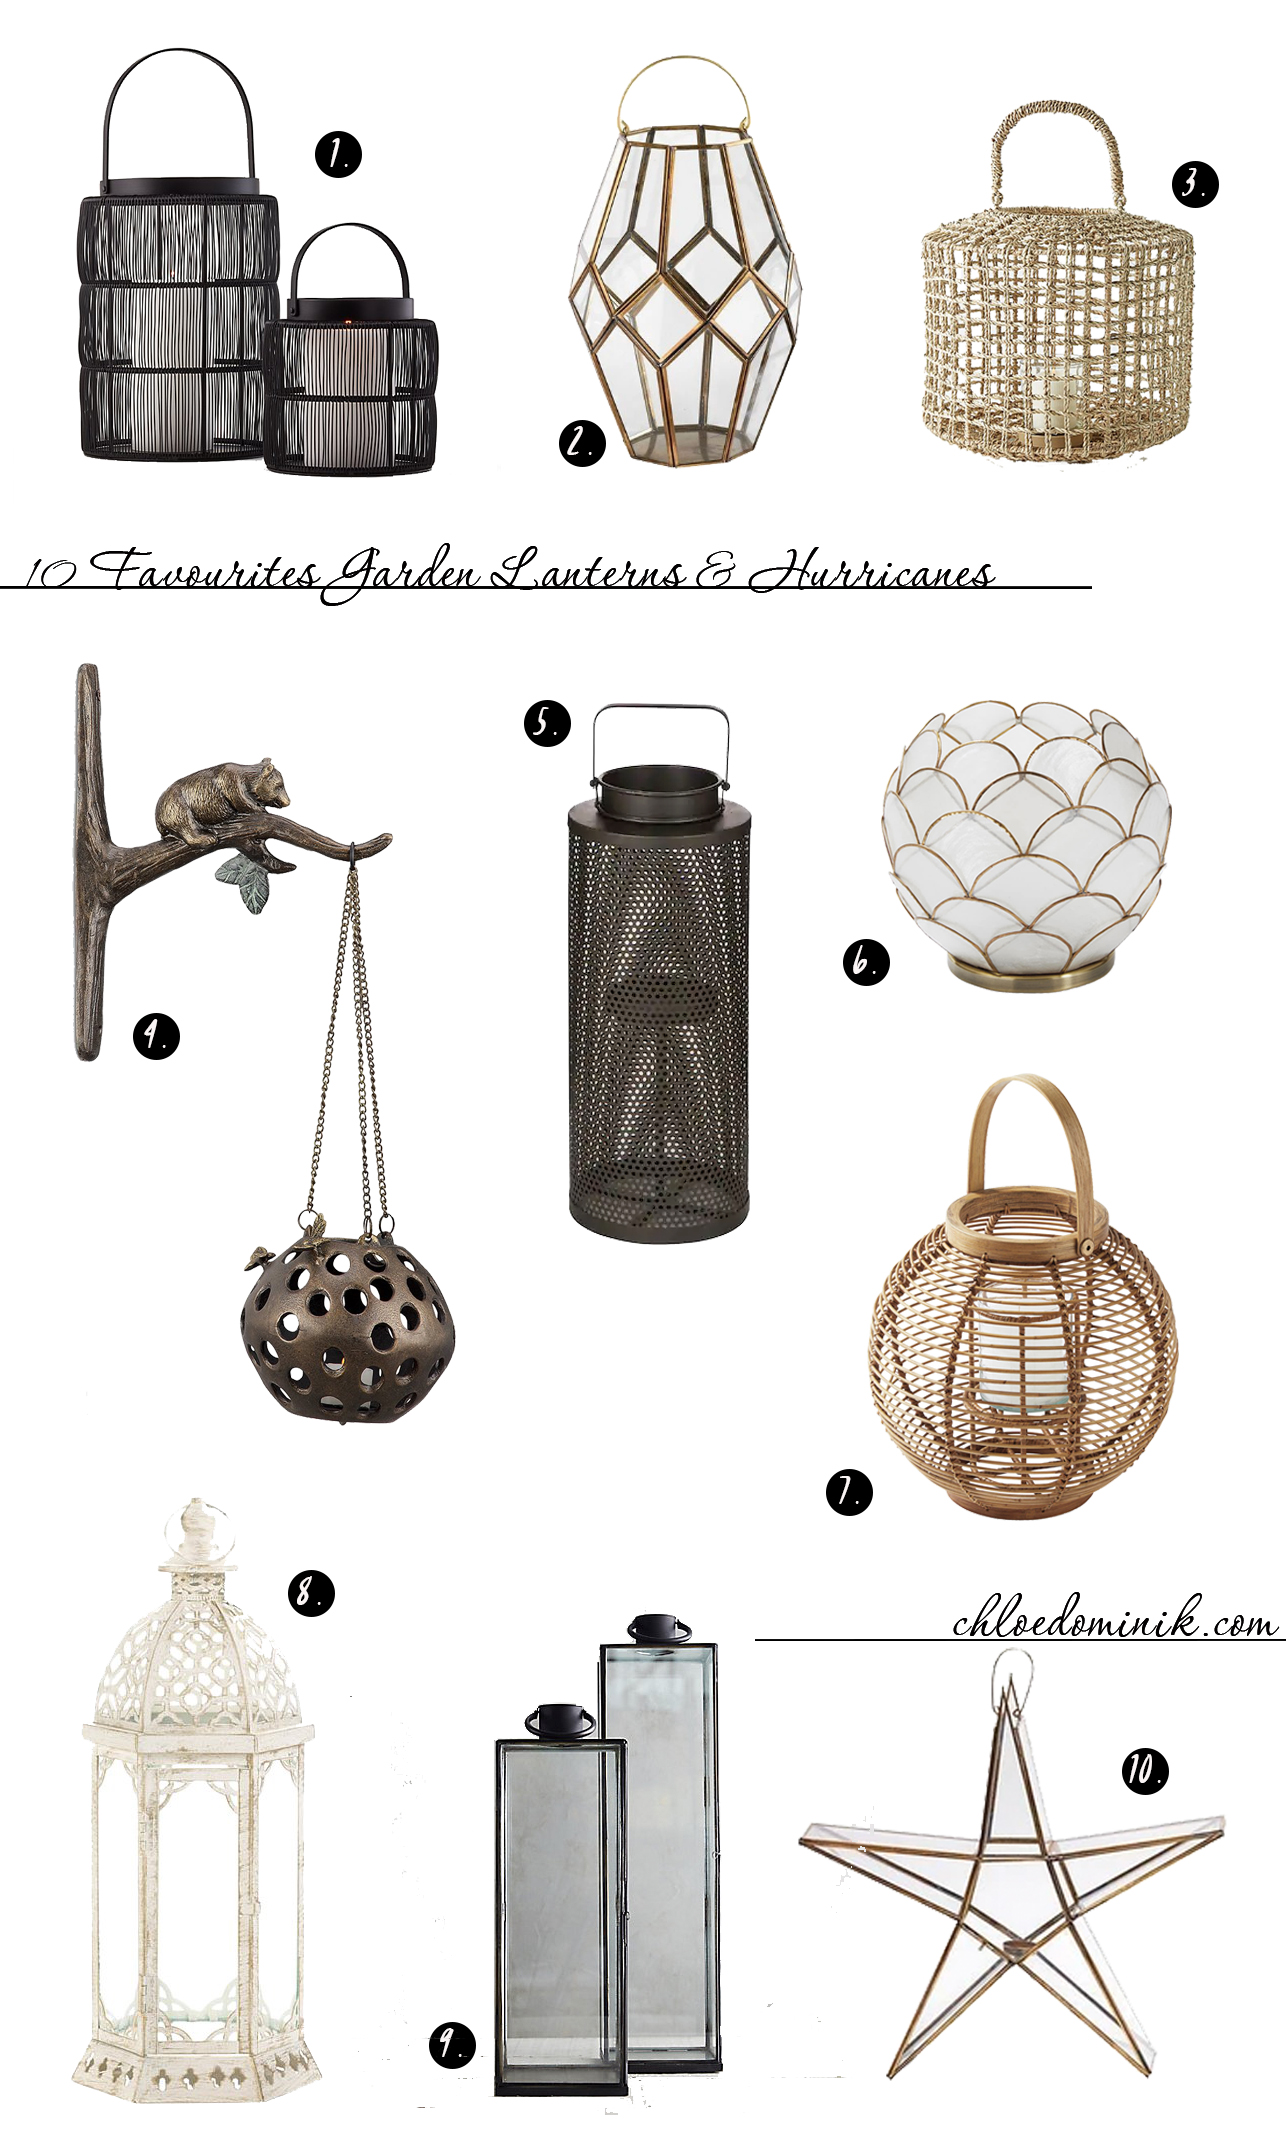 Using Garden Lanterns: 10 Favourites: Adding garden lanterns for your garden decor or when hosting a garden party, is a simple and easy way to add some decorative lighting features to enhance your outdoor space and the mood. Leaving you able to enjoy the Summer night's right through until the evening. @chloedominik #lanterns #lanternsdecor #gardenlanterns #gardenpartydecorations #gardenlanternoutdoor #gardenlanternideas #gardenlightingideas